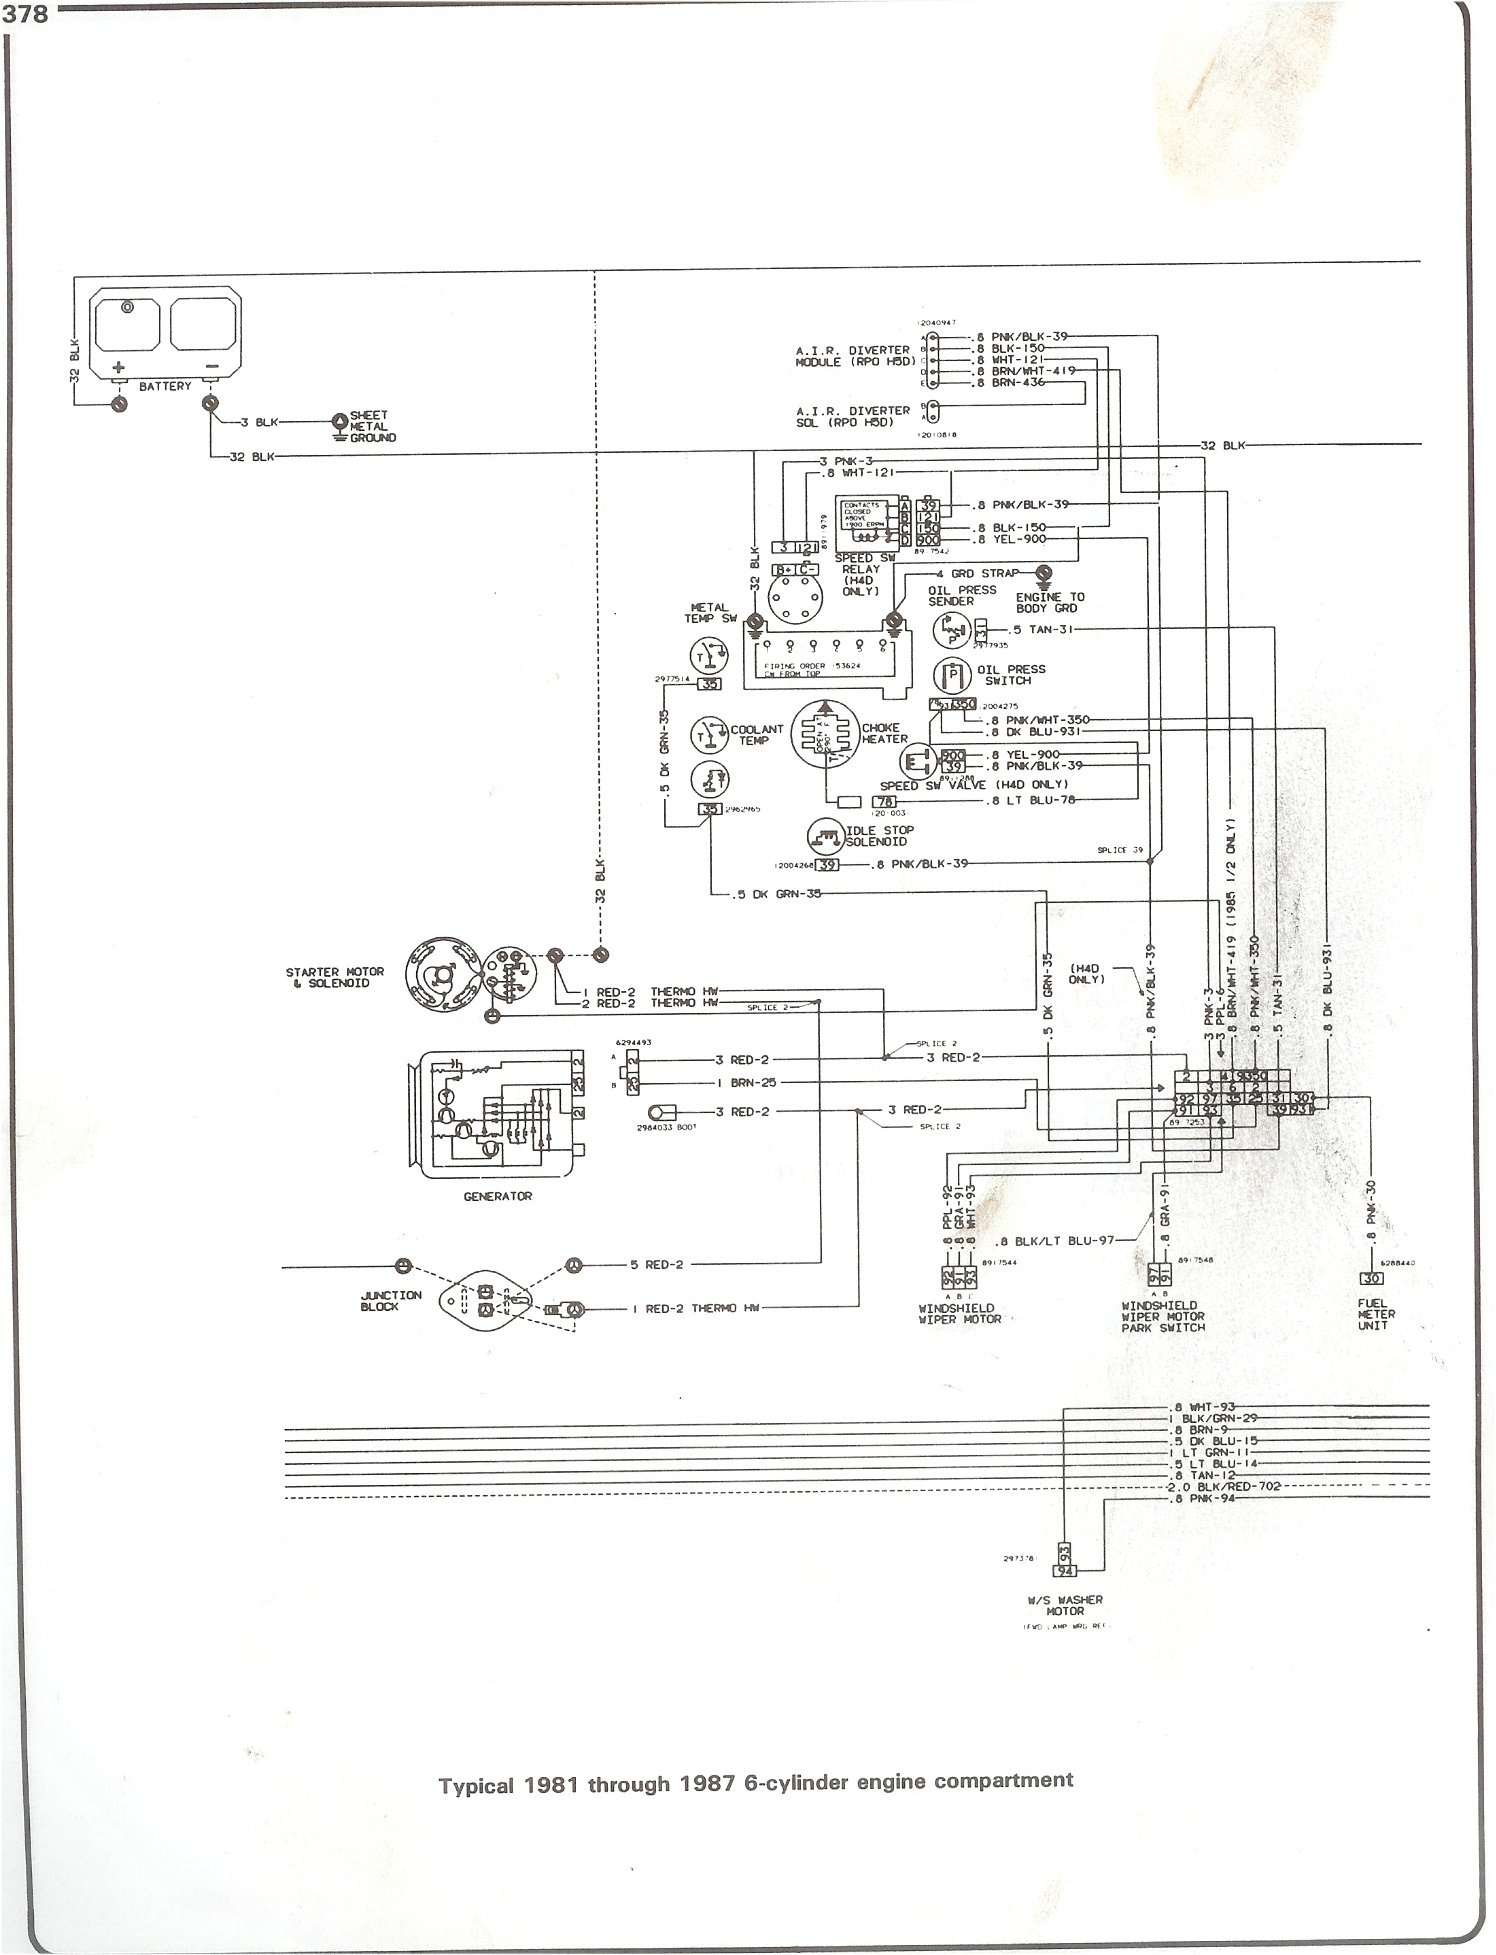 1992 Chevy Truck Ke Light Switch Wiring Diagram | Wiring Liry on 2002 gmc envoy stereo wiring diagram, silverado stereo wiring diagram, 2006 silverado light wiring diagram, 2004 chevy equinox wiring diagram, 2004 silverado trailer wiring diagram, 2004 silverado fuse diagram, 2000 silverado fuel pump wiring diagram, 2001 chevy silverado heater diagram, 1996 chevy blazer radio wiring diagram, 2011 silverado headlight wiring diagram, 04 silverado wiring diagram, 2004 toyota highlander wiring diagram, 4x4 wiring diagram, 2004 mitsubishi galant wiring diagram, 2004 pontiac gto wiring diagram, 04 silverado front headlight diagram, 2004 chevy aveo wiring diagram, 1999 silverado tail light wiring diagram, 2005 chevy silverado brake system diagram, 2004 cadillac cts wiring diagram,